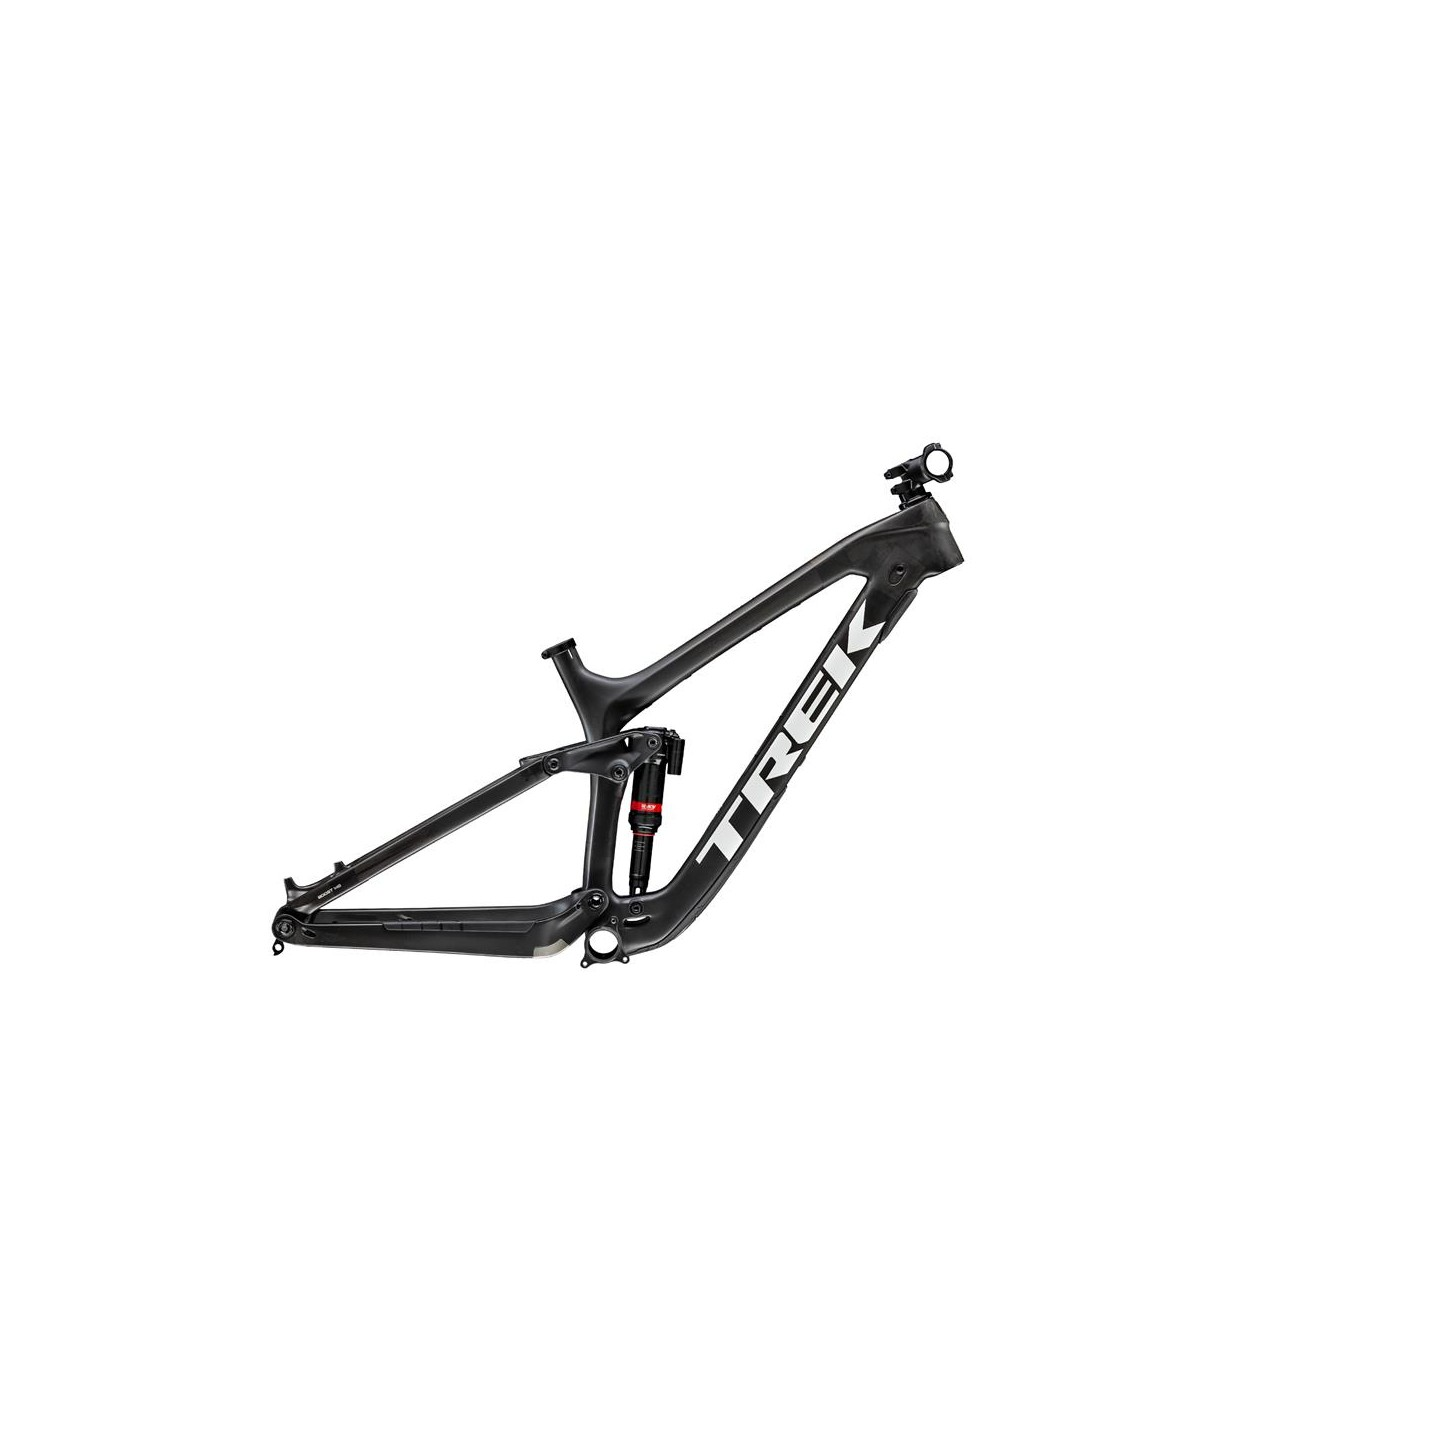 Trek Slash Carbon frameset 29 2020